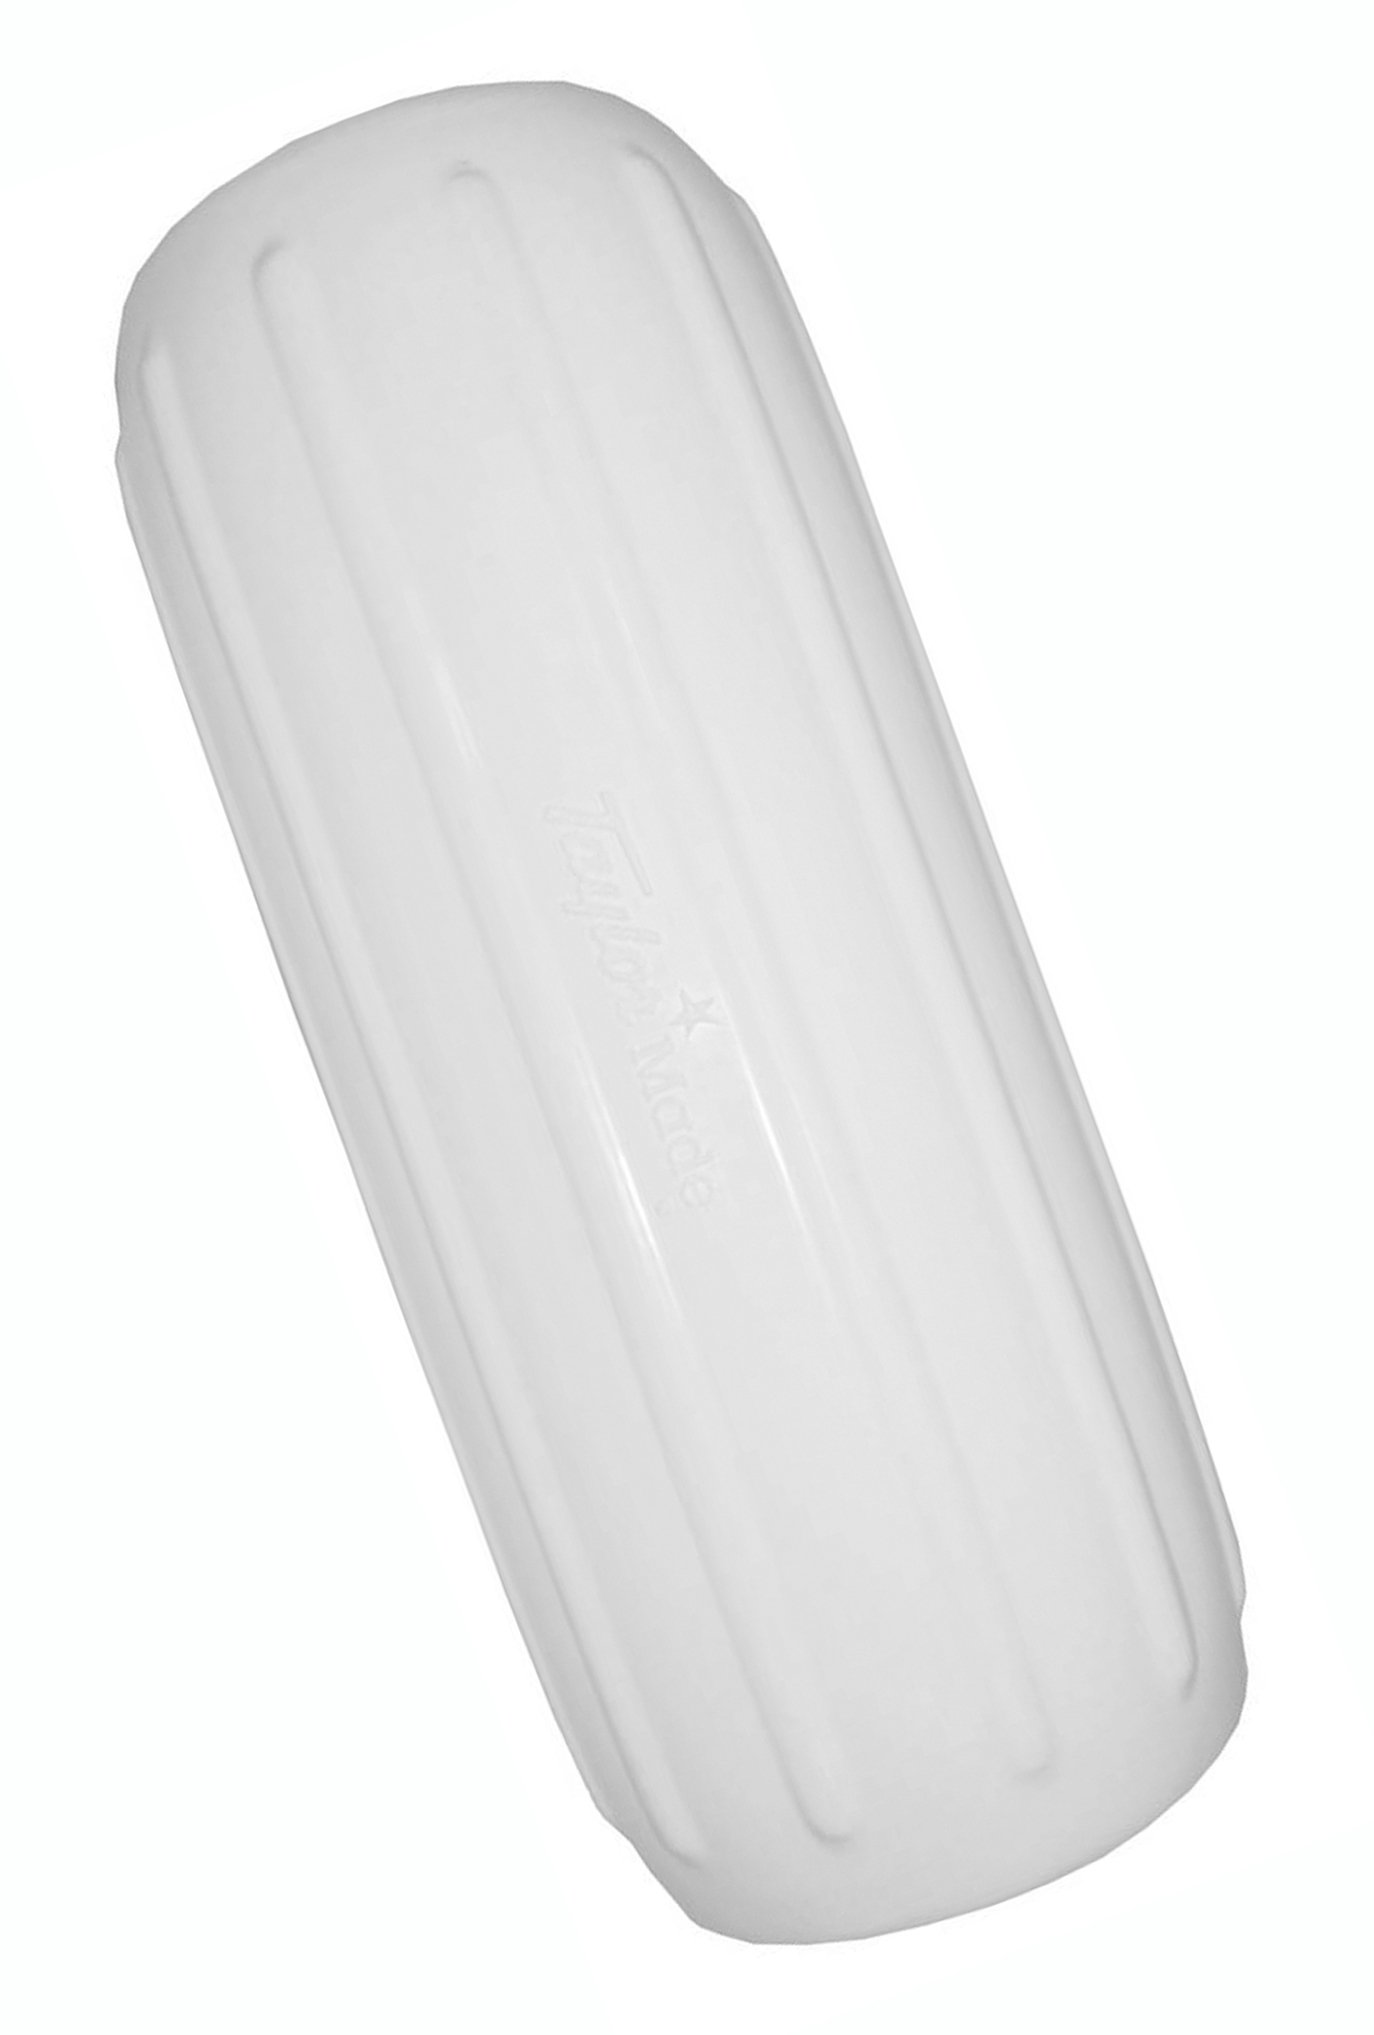 Taylor Made Products 1034 Big B Inflatable Vinyl Boat Fender with Center Rope Tube 12 inch x 34 inch, White by TAYLOR MADE PRODUCTS